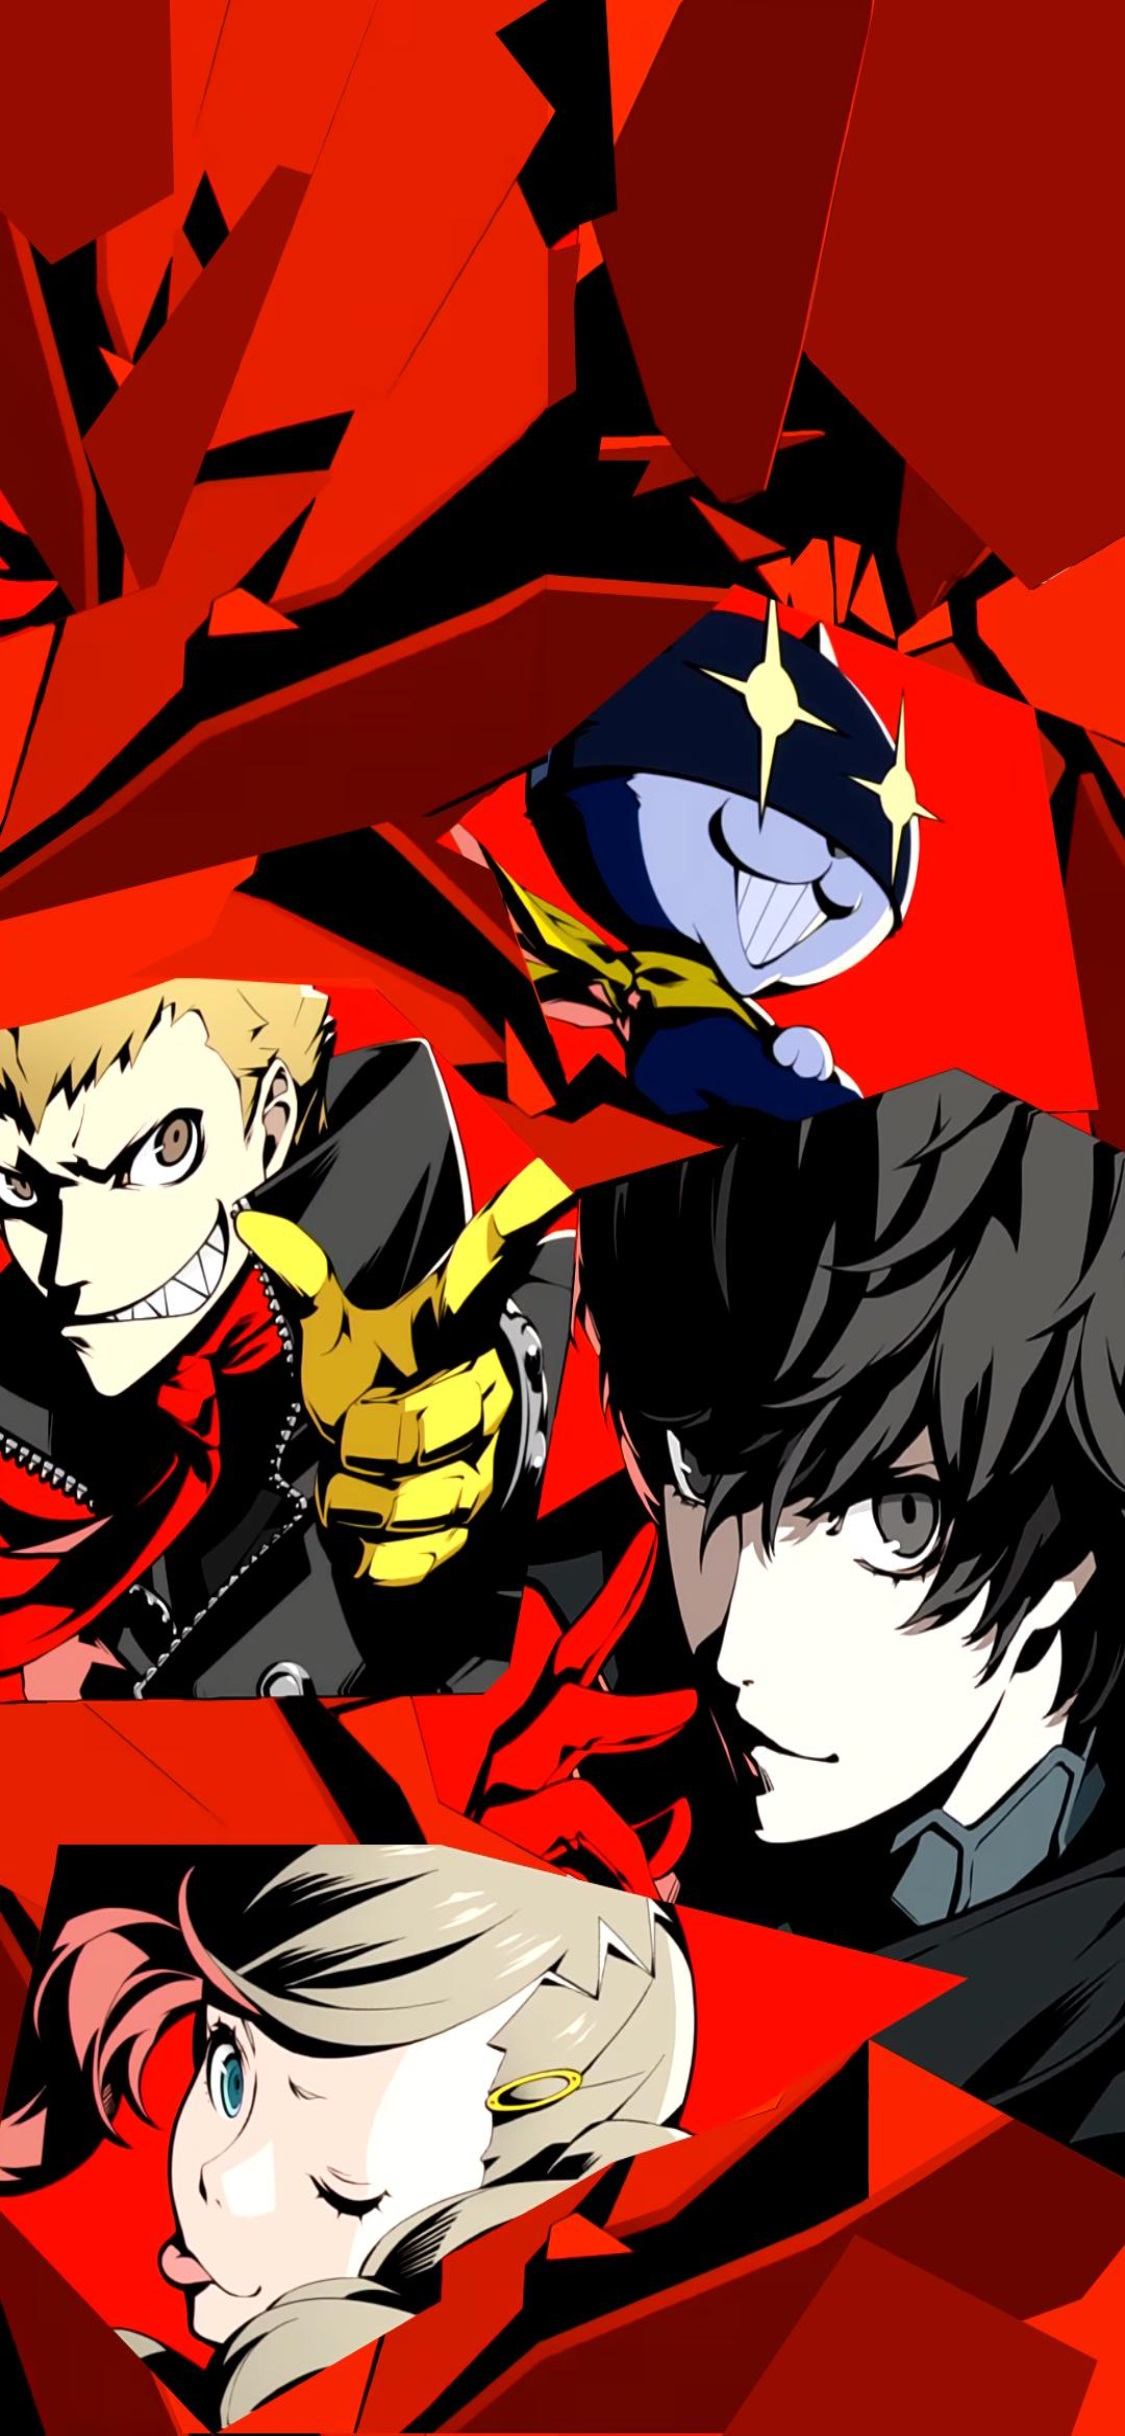 Persona 5 Wallpaper For Iphone - Persona 5 Wallpaper Iphone X , HD Wallpaper & Backgrounds